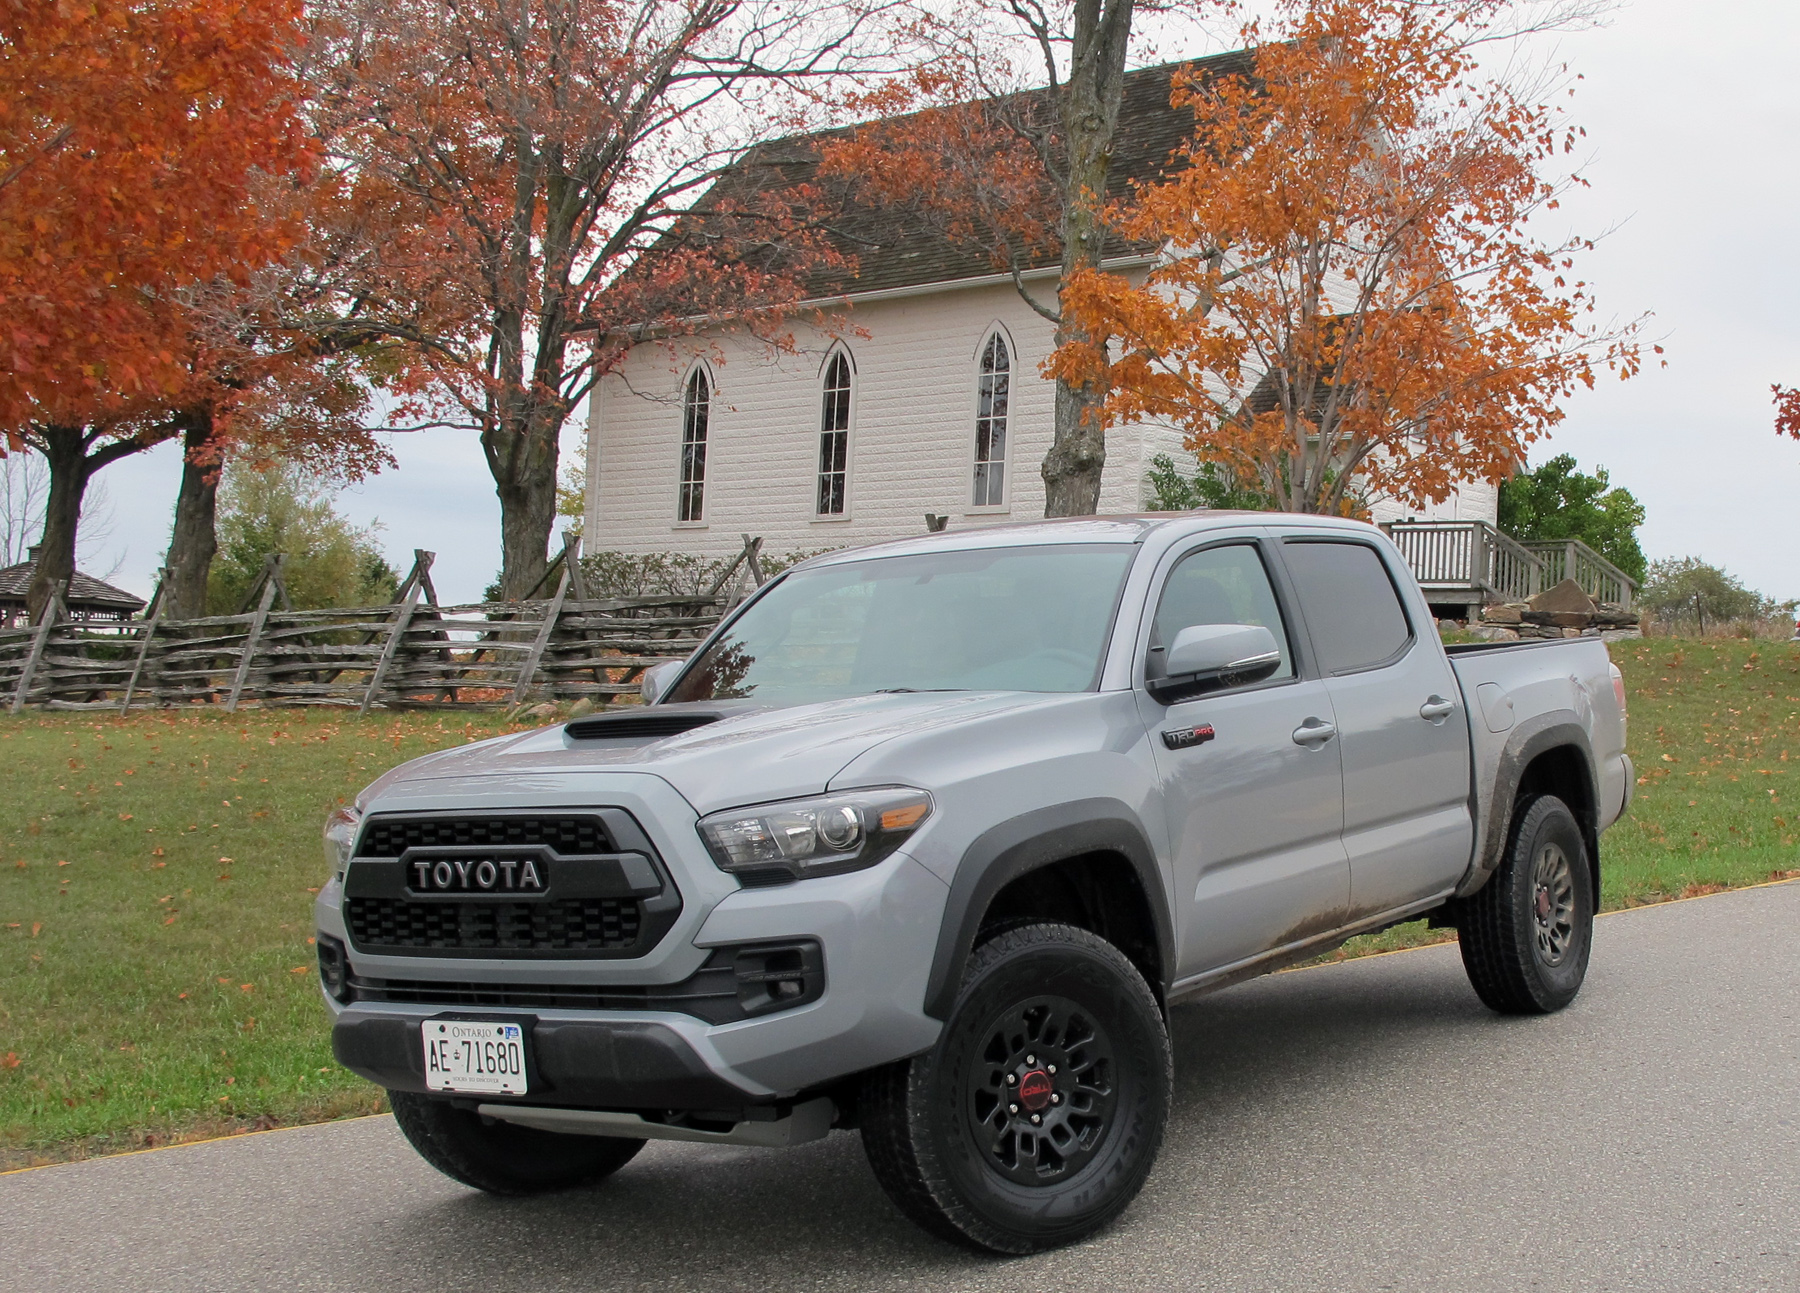 2016 Toyota Tacoma Trd Off Road >> Tacoma goes anywhere in TRD-Pro style – WHEELS.ca